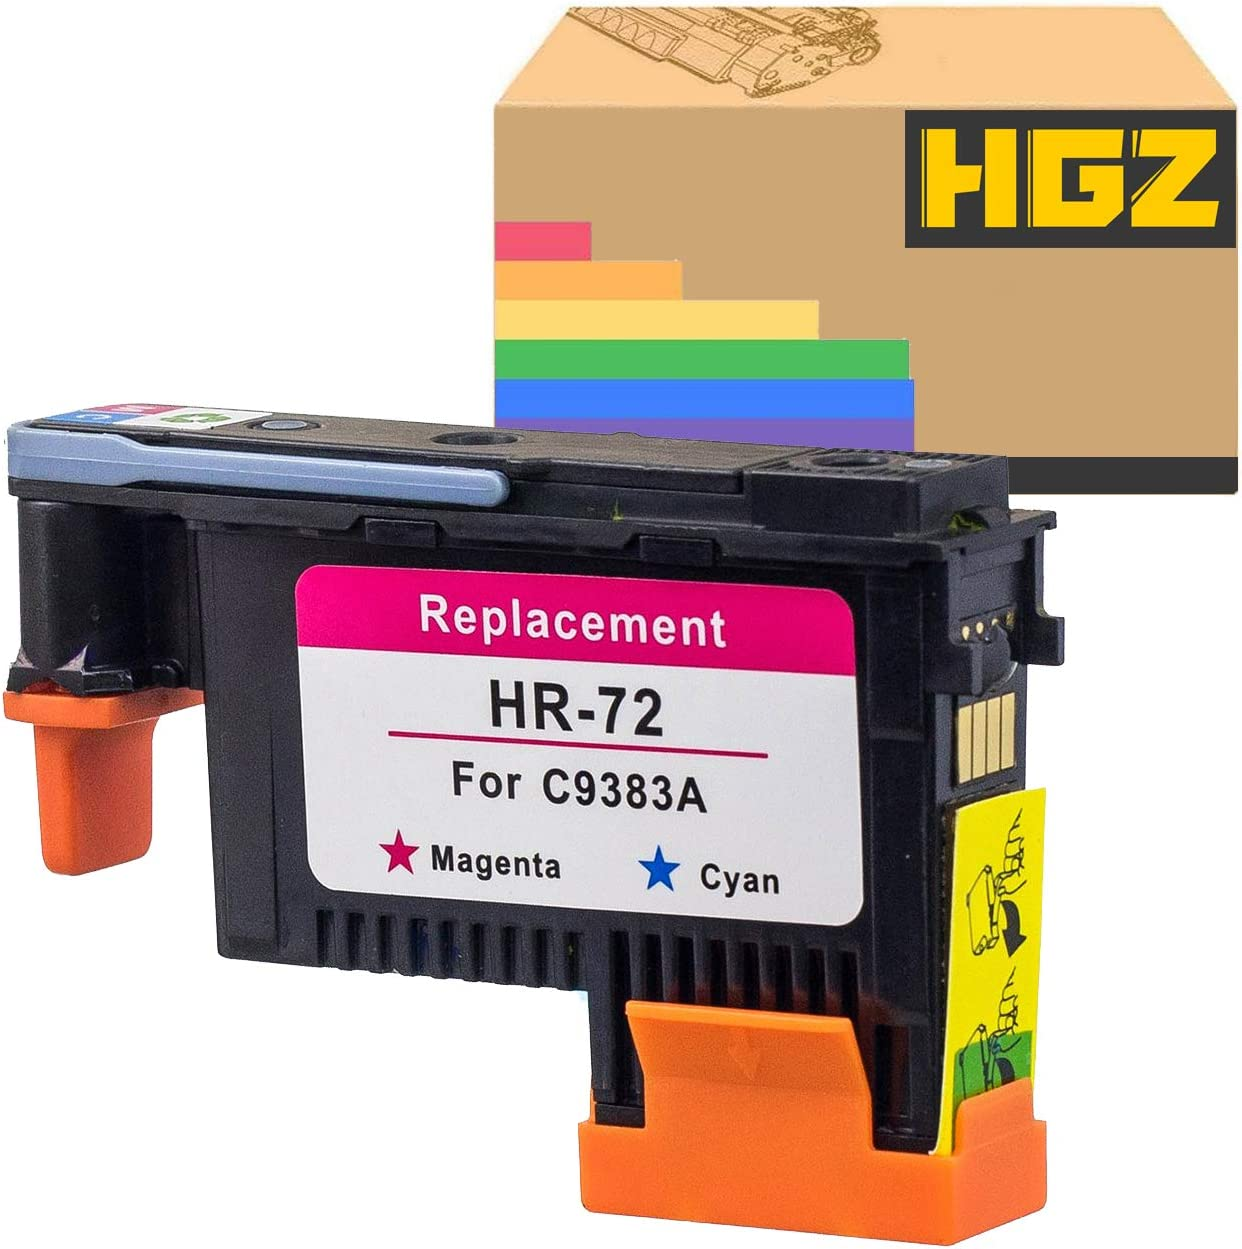 HGZ 1 Pack HP72 Magenta/Cyan Printheads with New Updated Chips Compatible for HP Designjet T610 T620 T770 T790 T1100 T1120 T1200 T1300 T2300